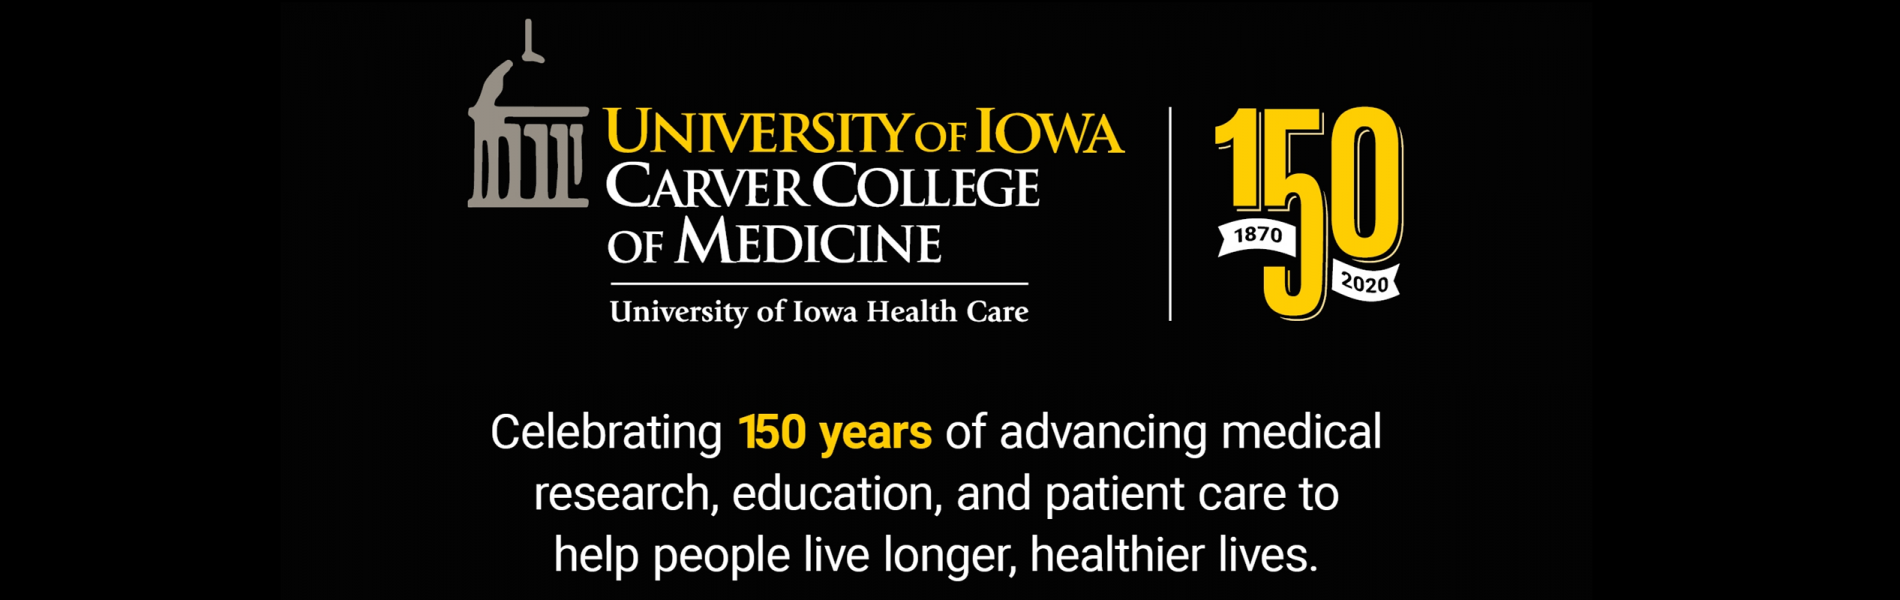 University of Iowa 150 years (1870-2020)